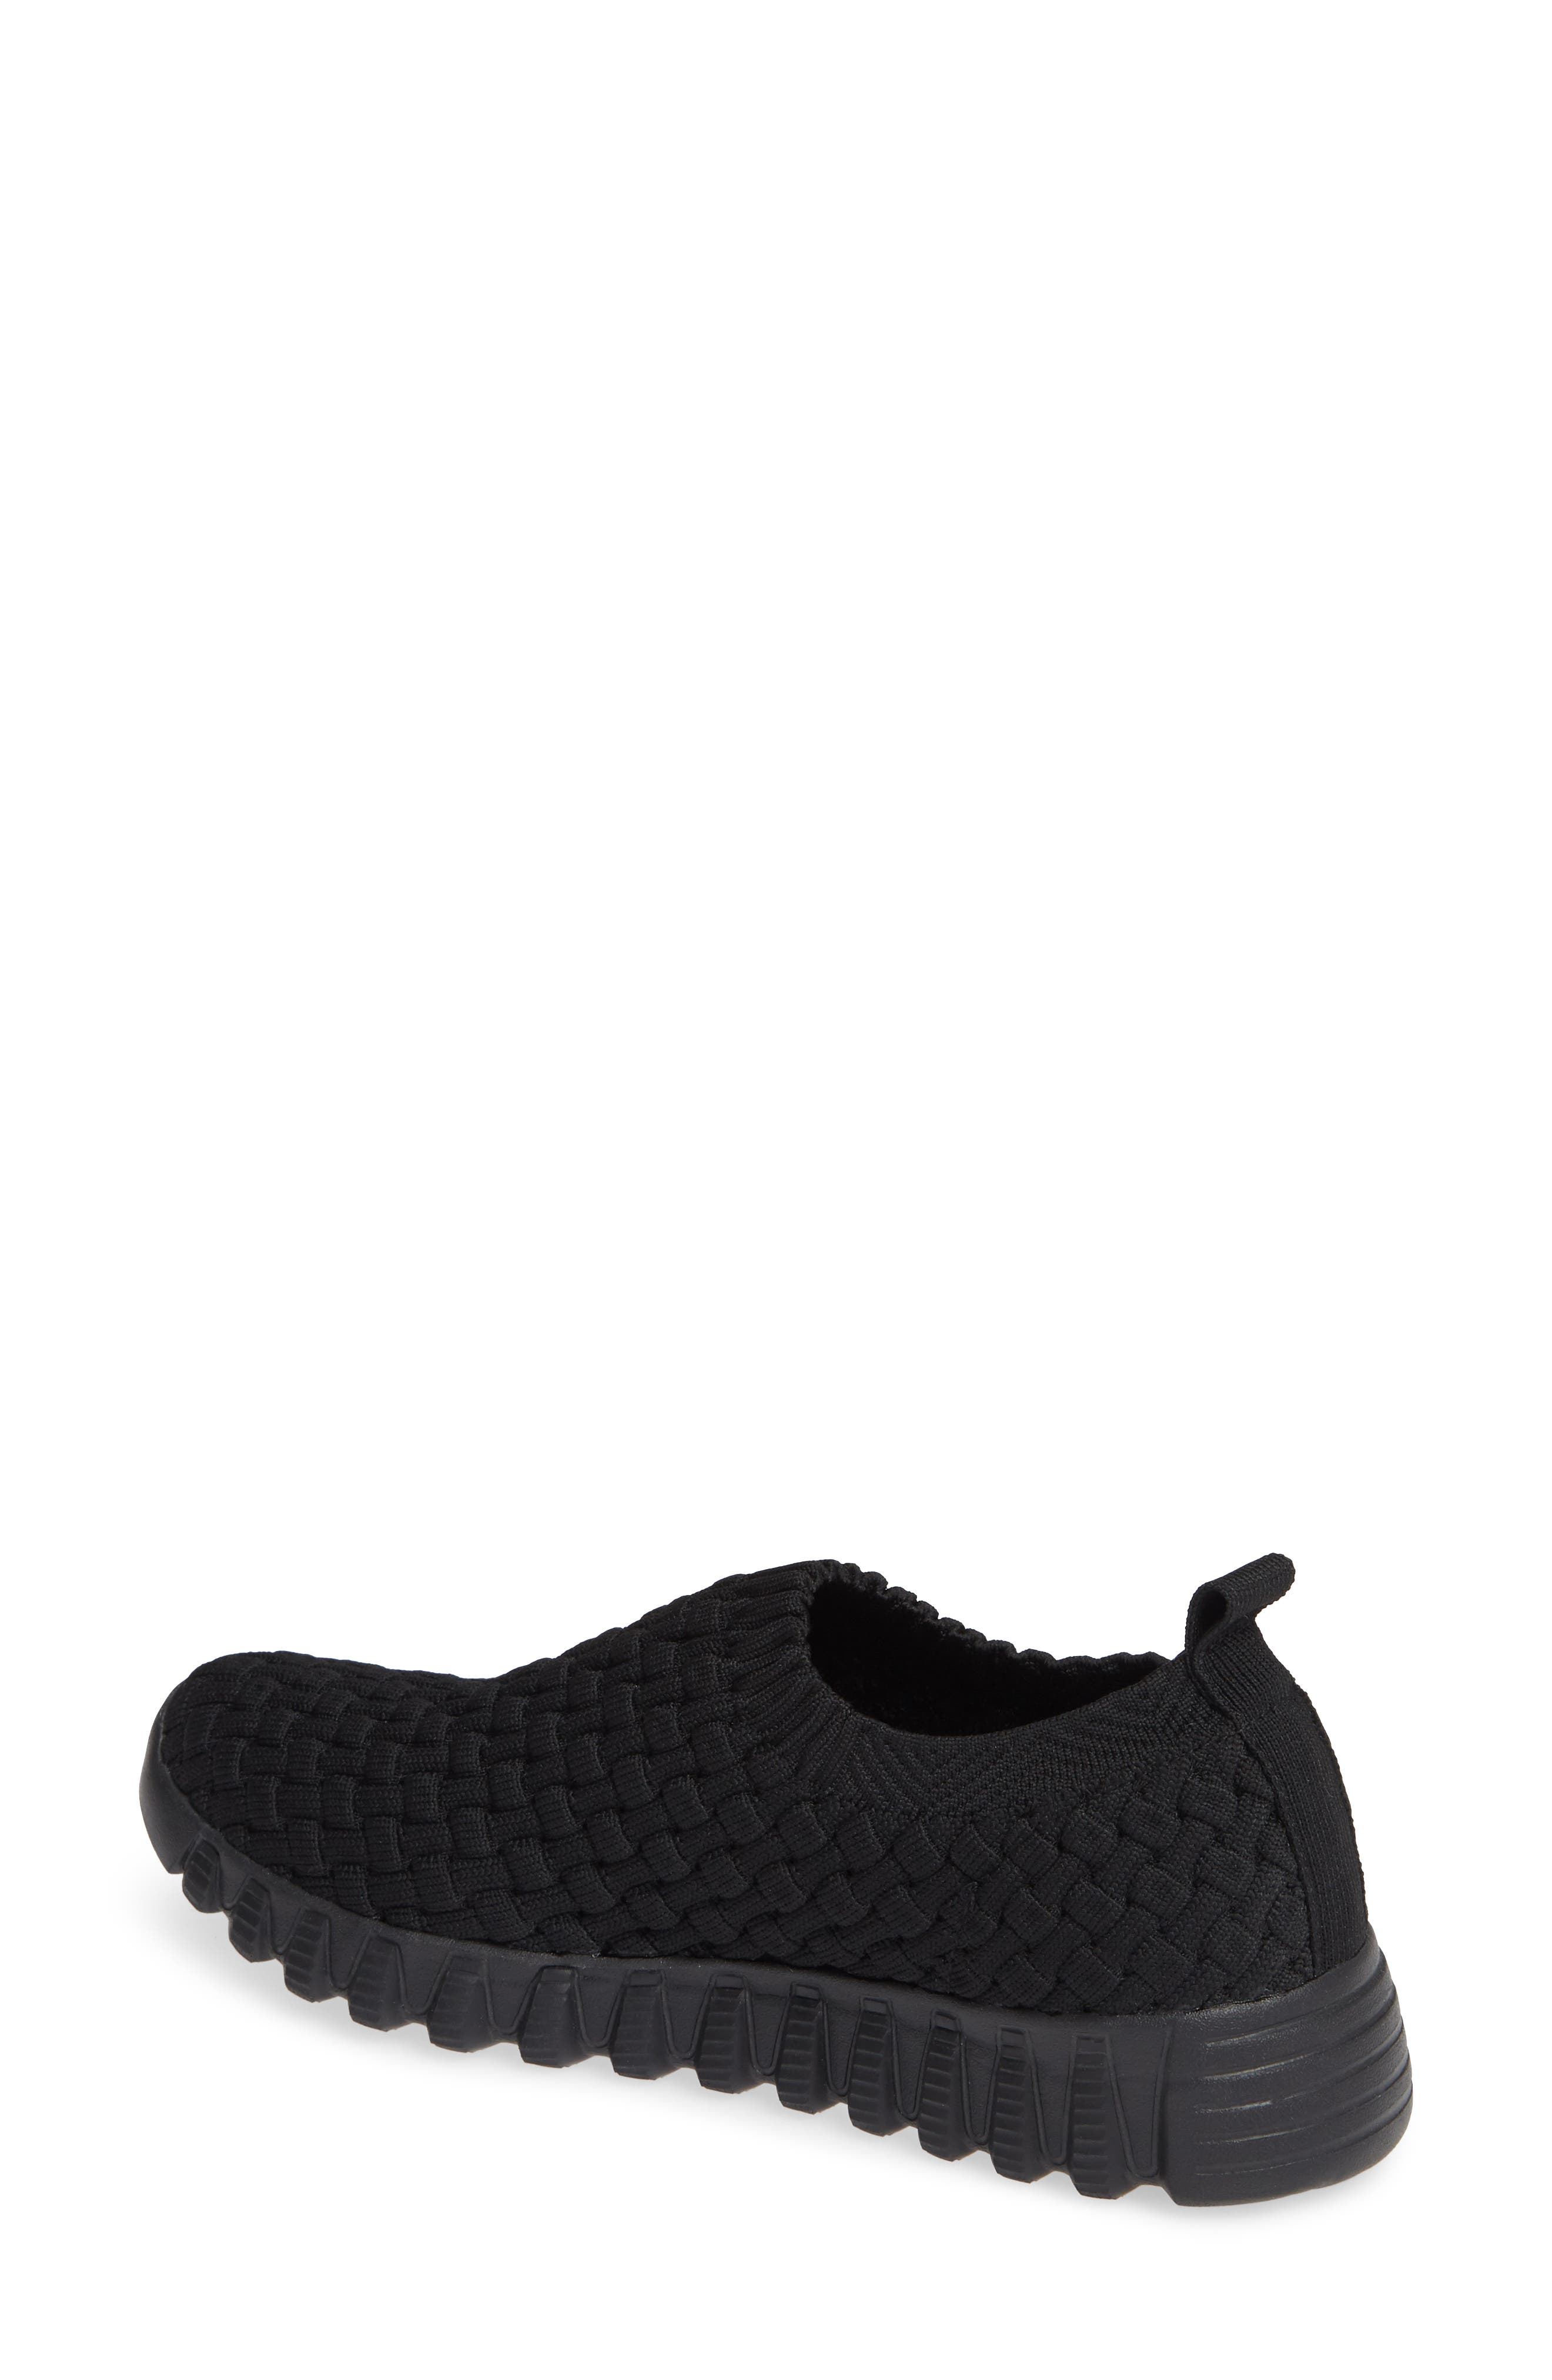 Tender Slip-On Sneaker,                             Alternate thumbnail 2, color,                             BLACK FABRIC